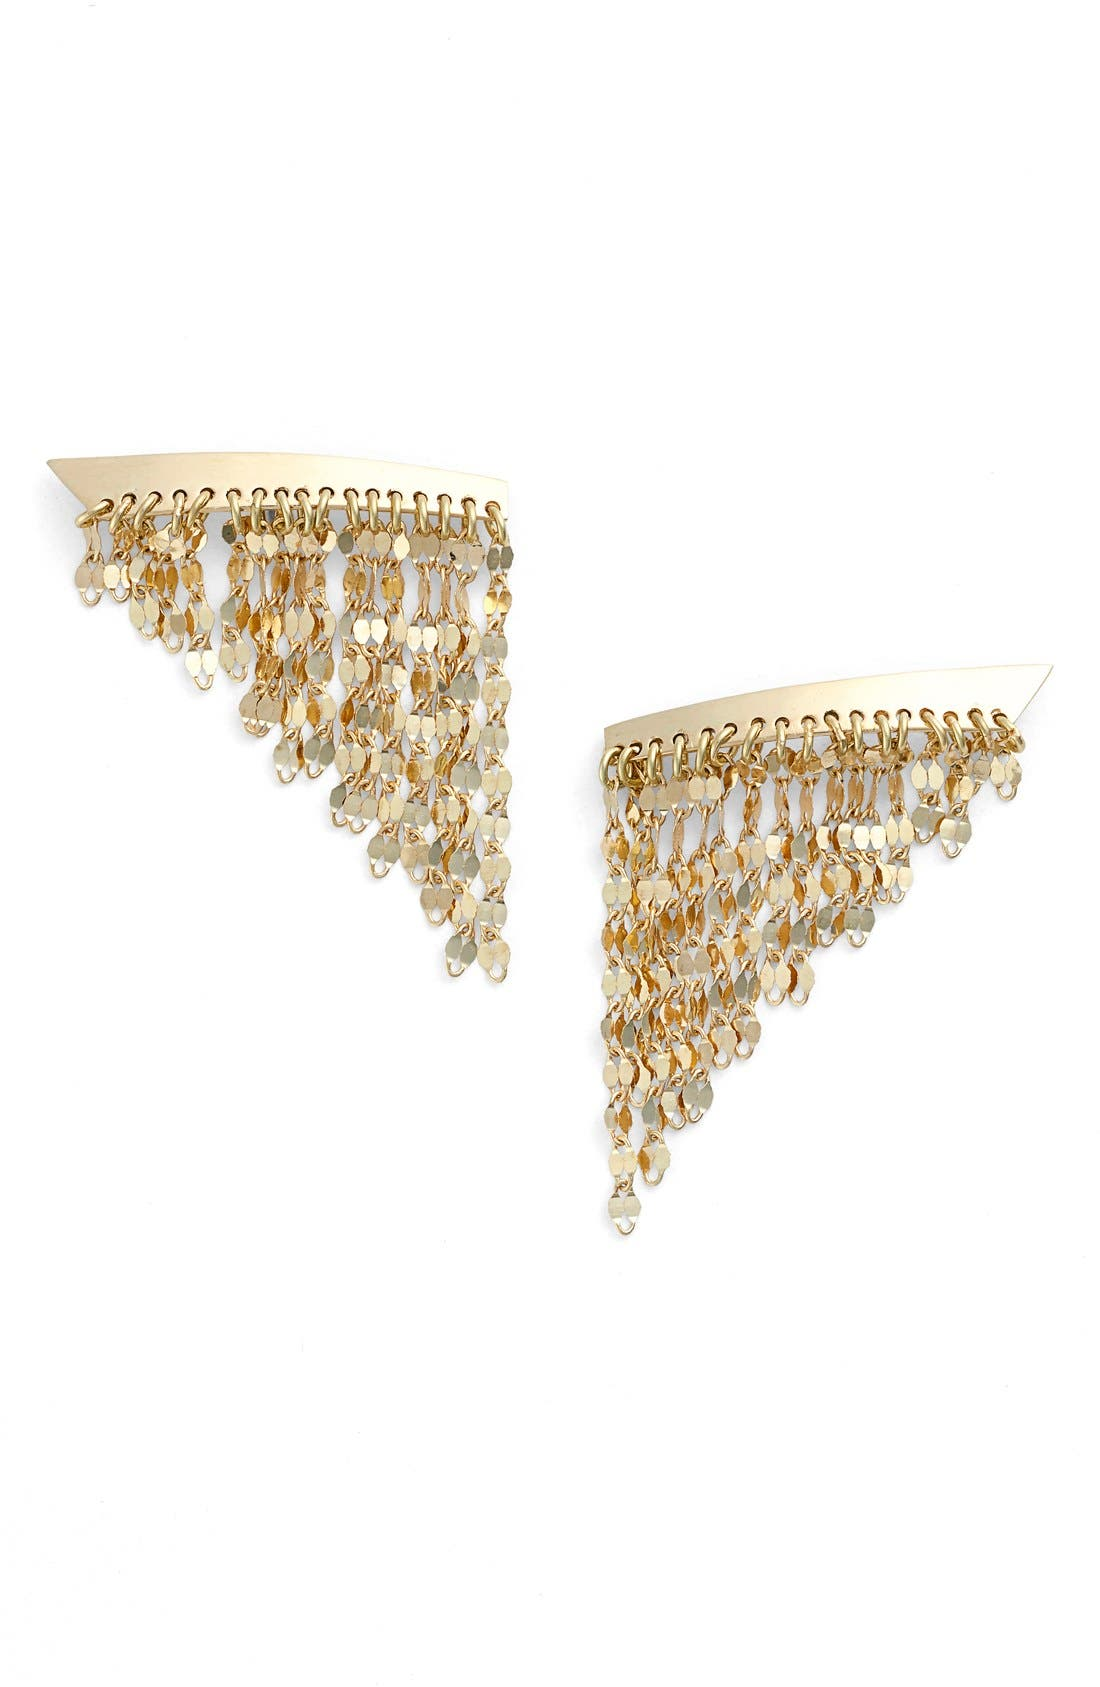 Main Image - Lana Jewelry Small Fringe Drop Earrings